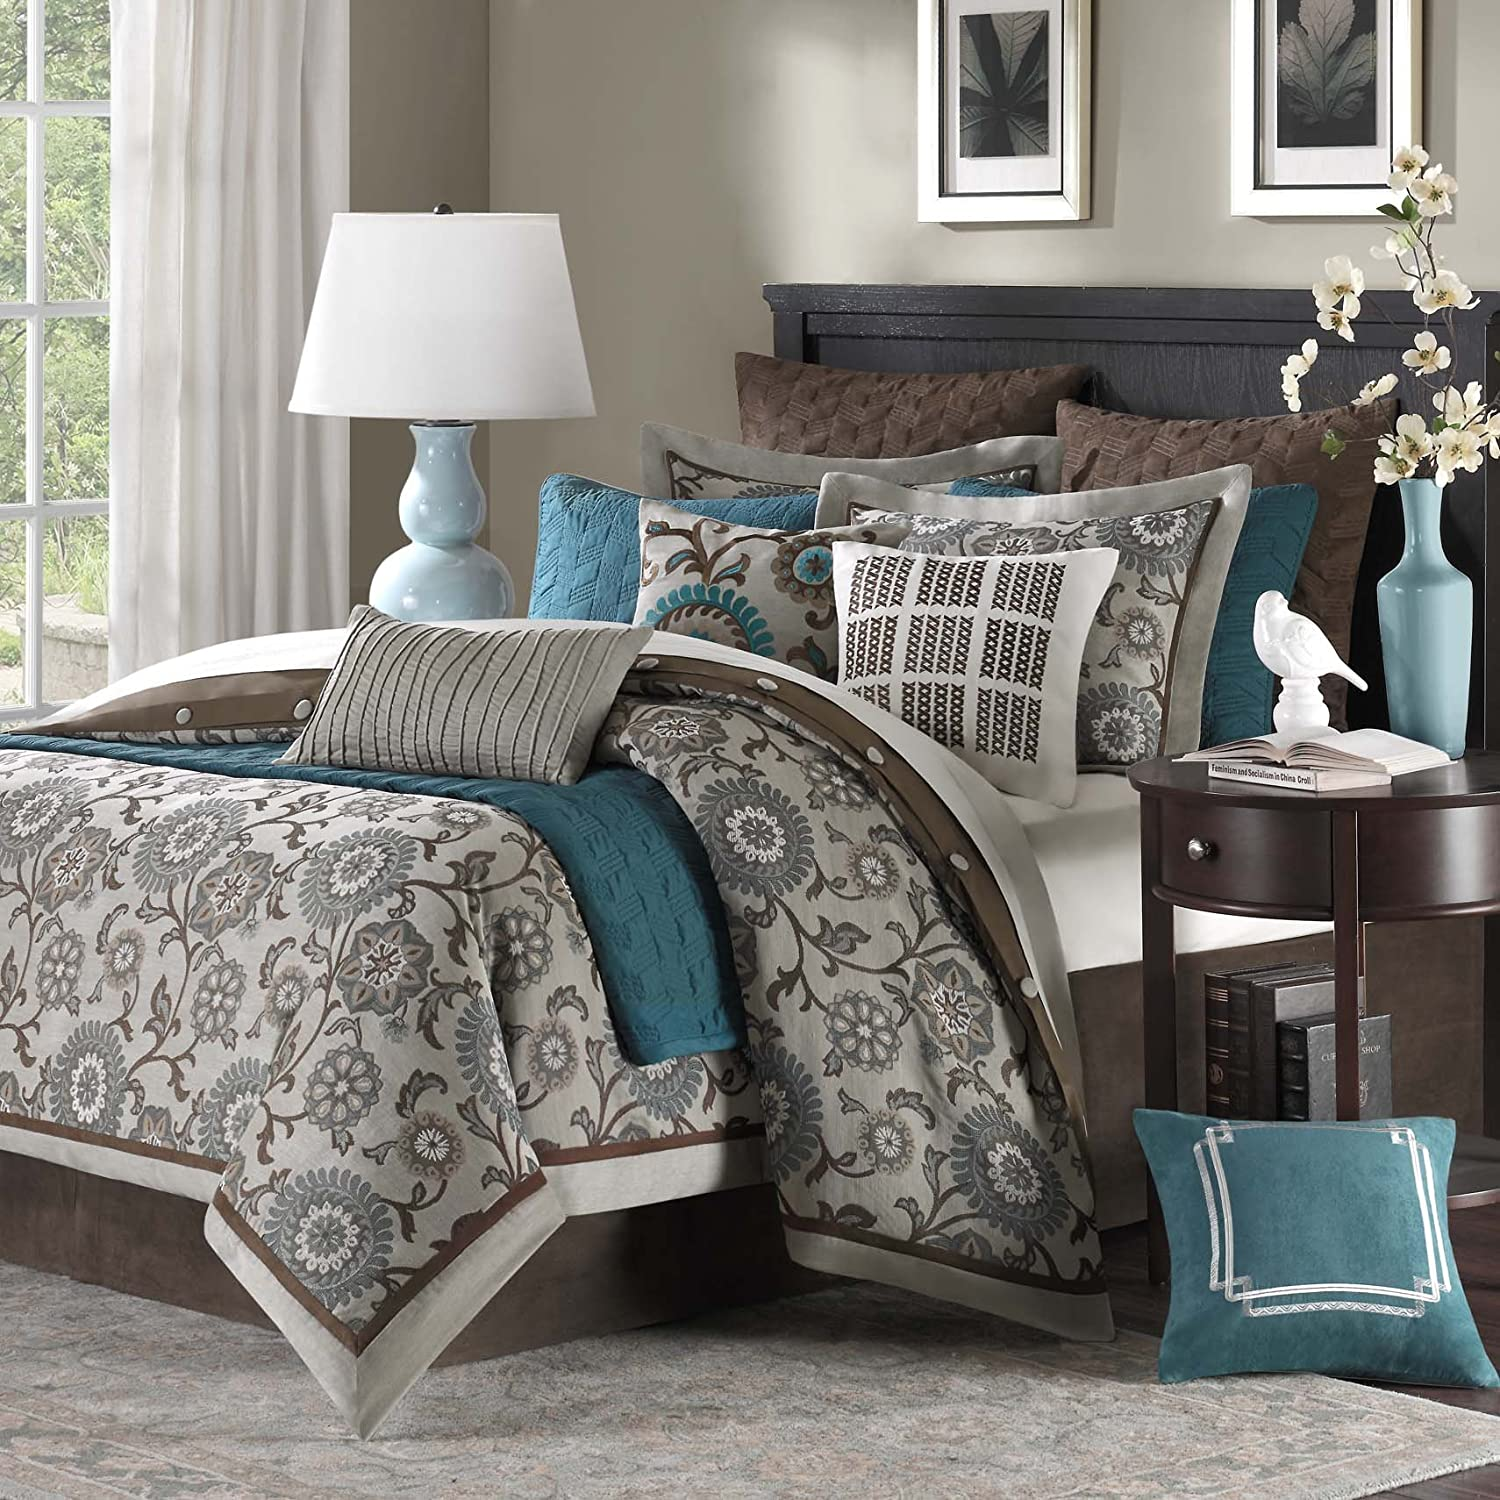 Brown bedding sets queen - Teal And Brown Bedding And Comforter Sets